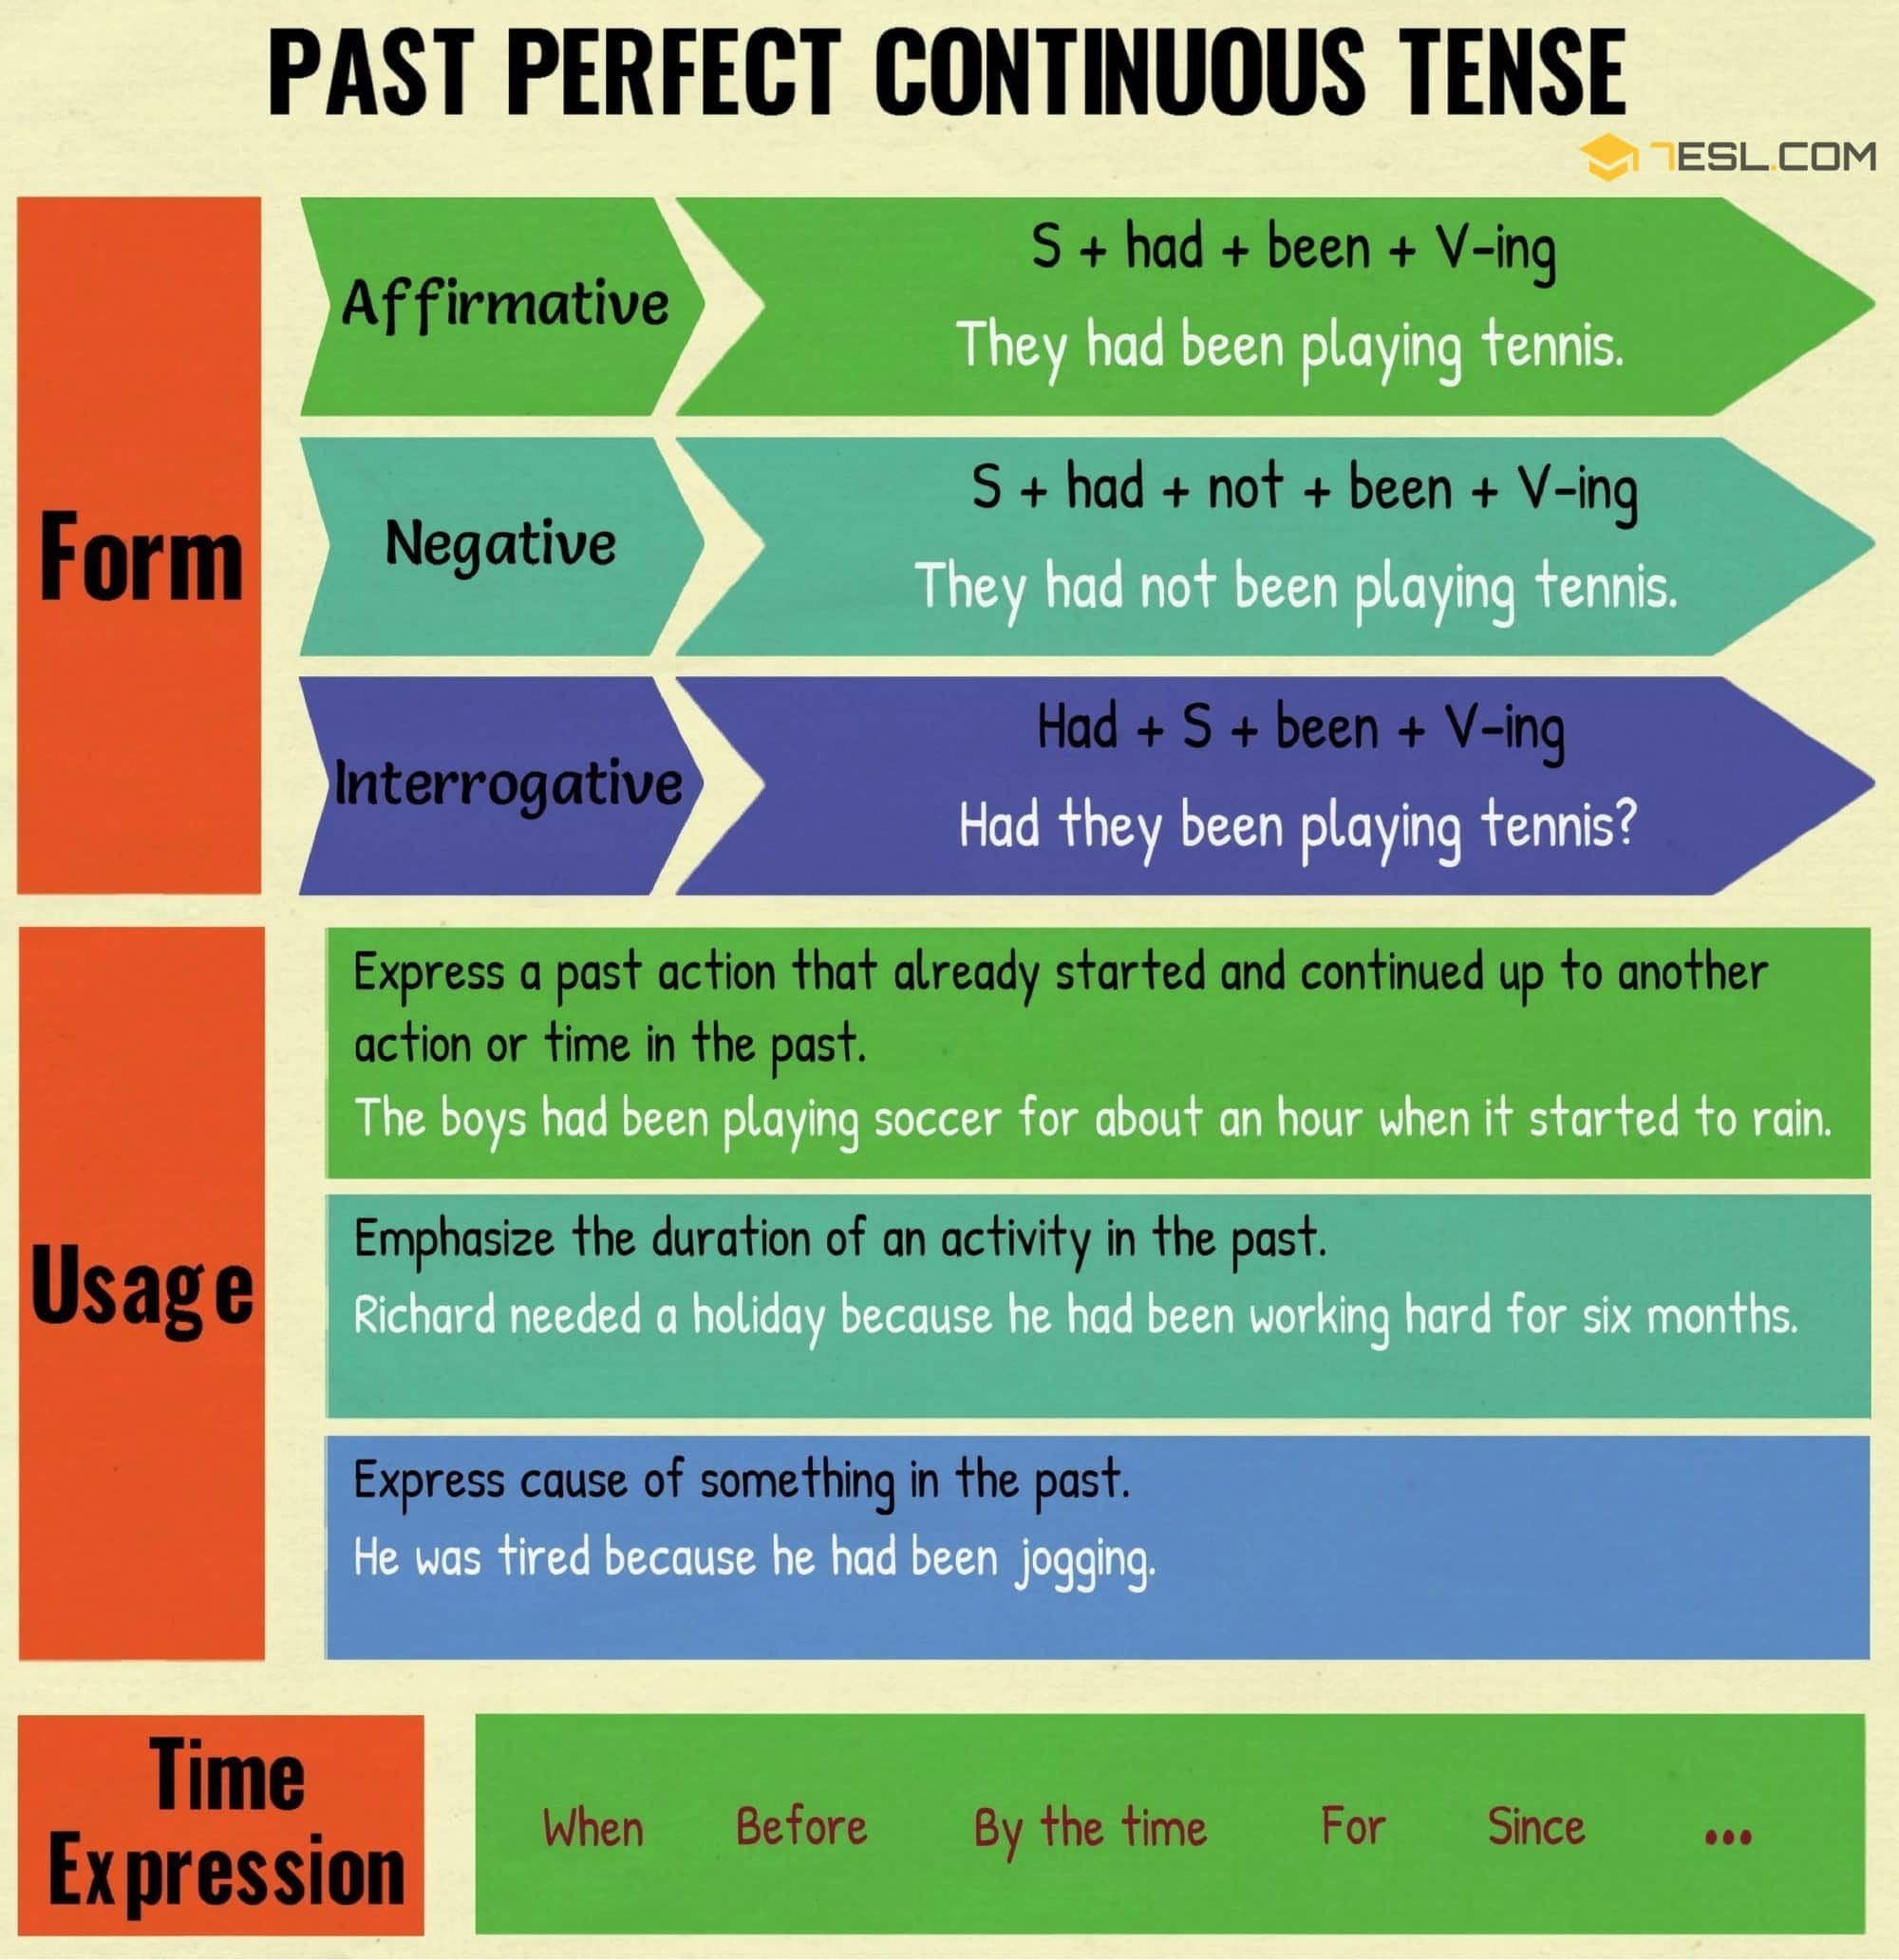 Past Perfect Continuous Tense: Useful Rules & Examples - 7 E S L